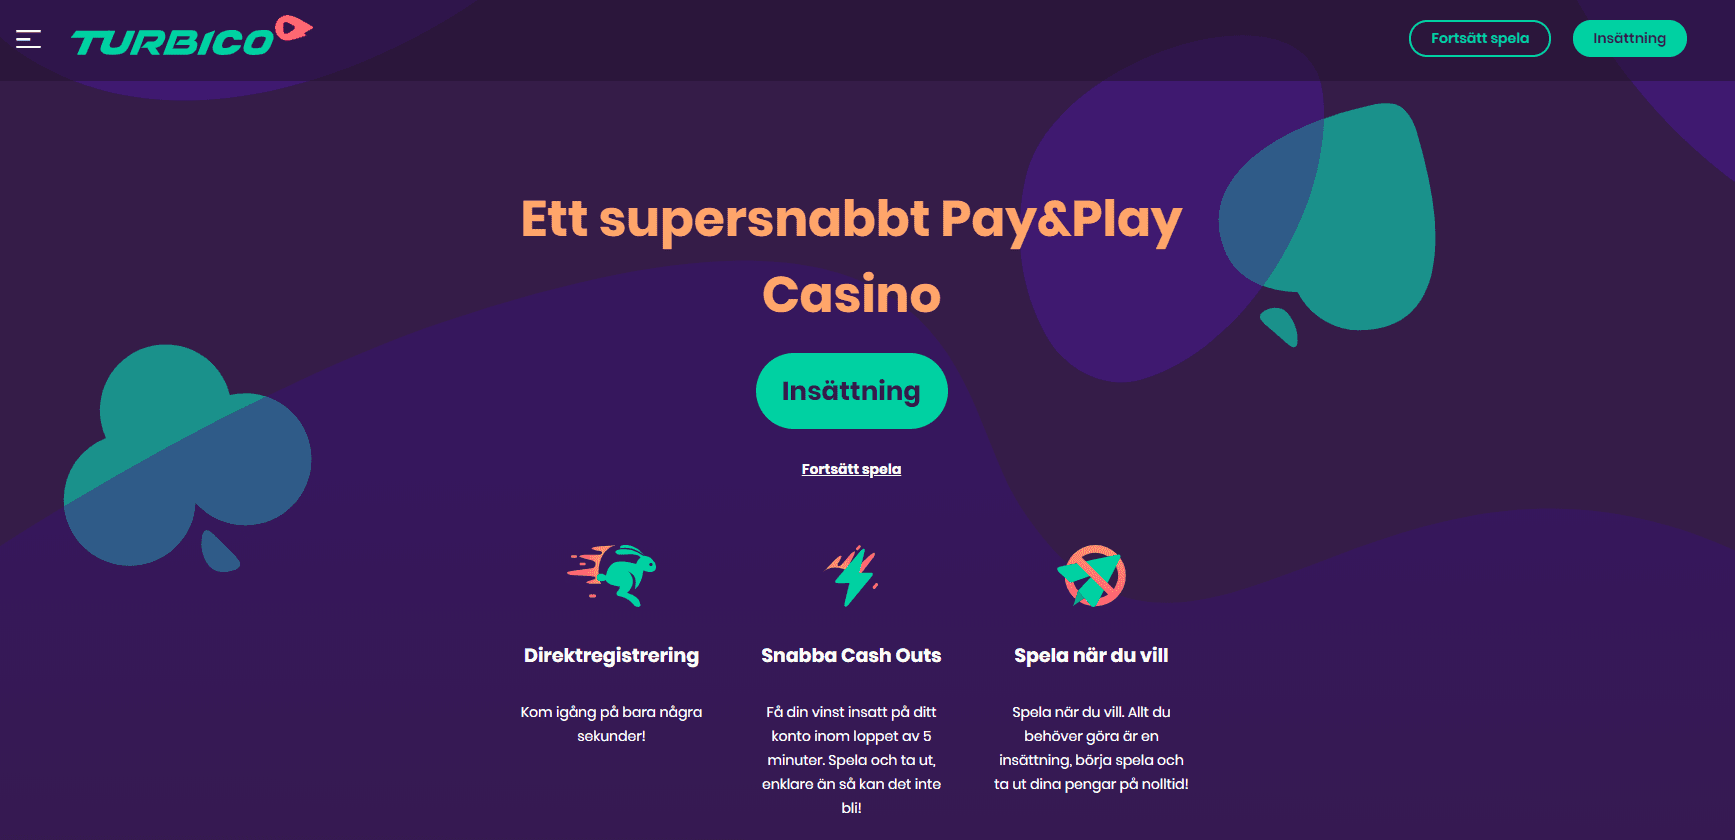 Casino apps that earn rewards